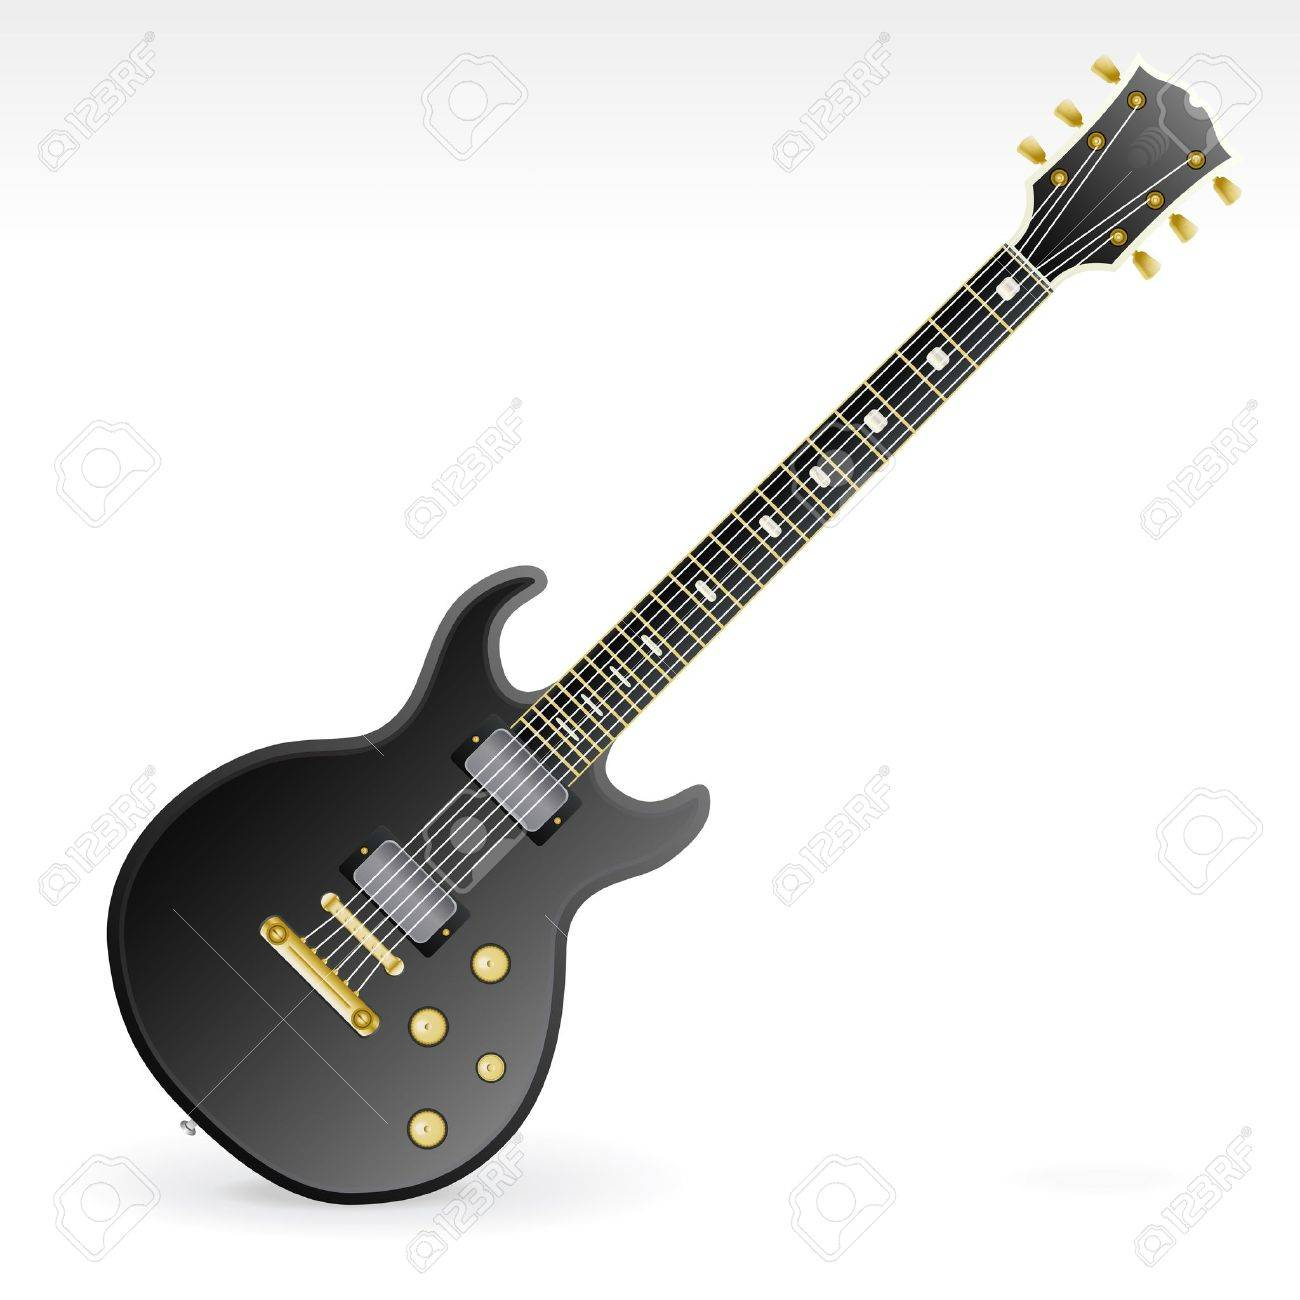 Vector illustration of a highly detailed six string electric rock guitar with gold and silver elements, two magnets and four tone knobs. - 3905568